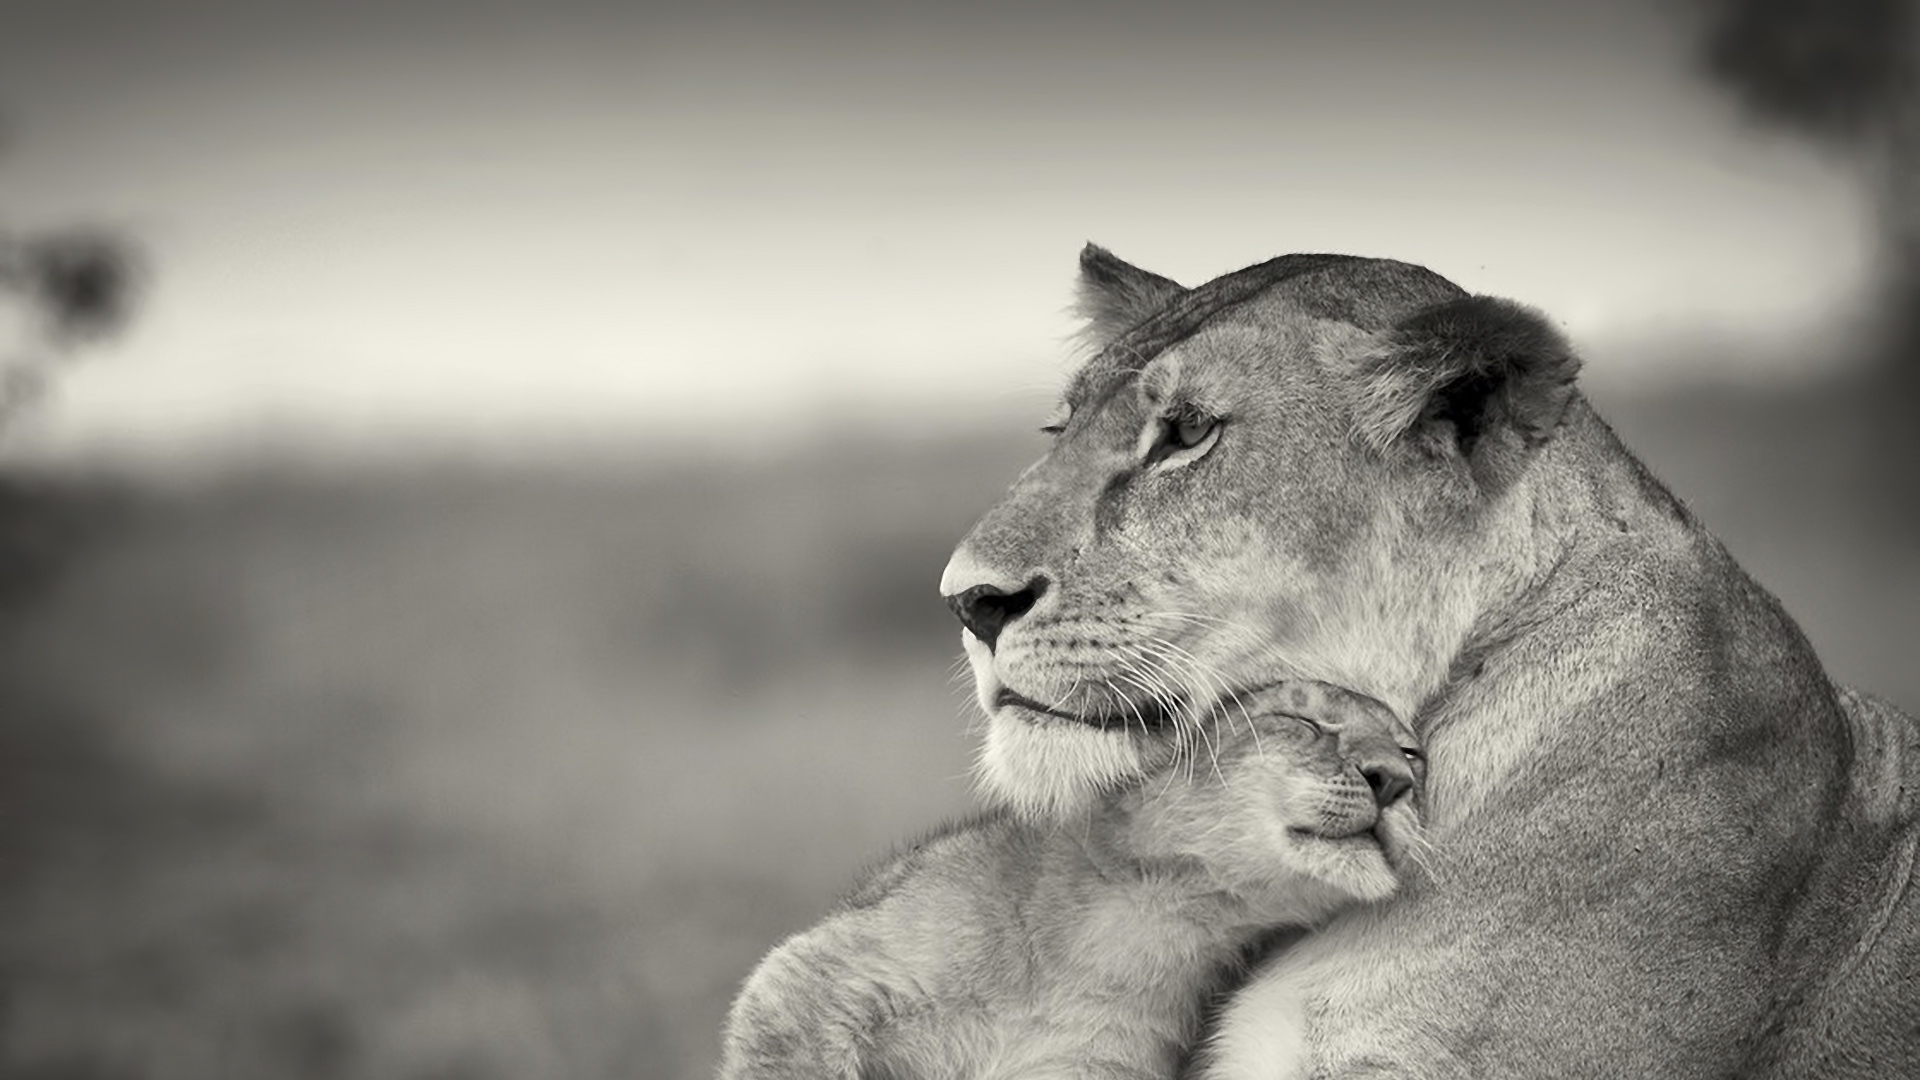 Download Wallpaper 1920x1080 Lion Couple Wool Cub Black And